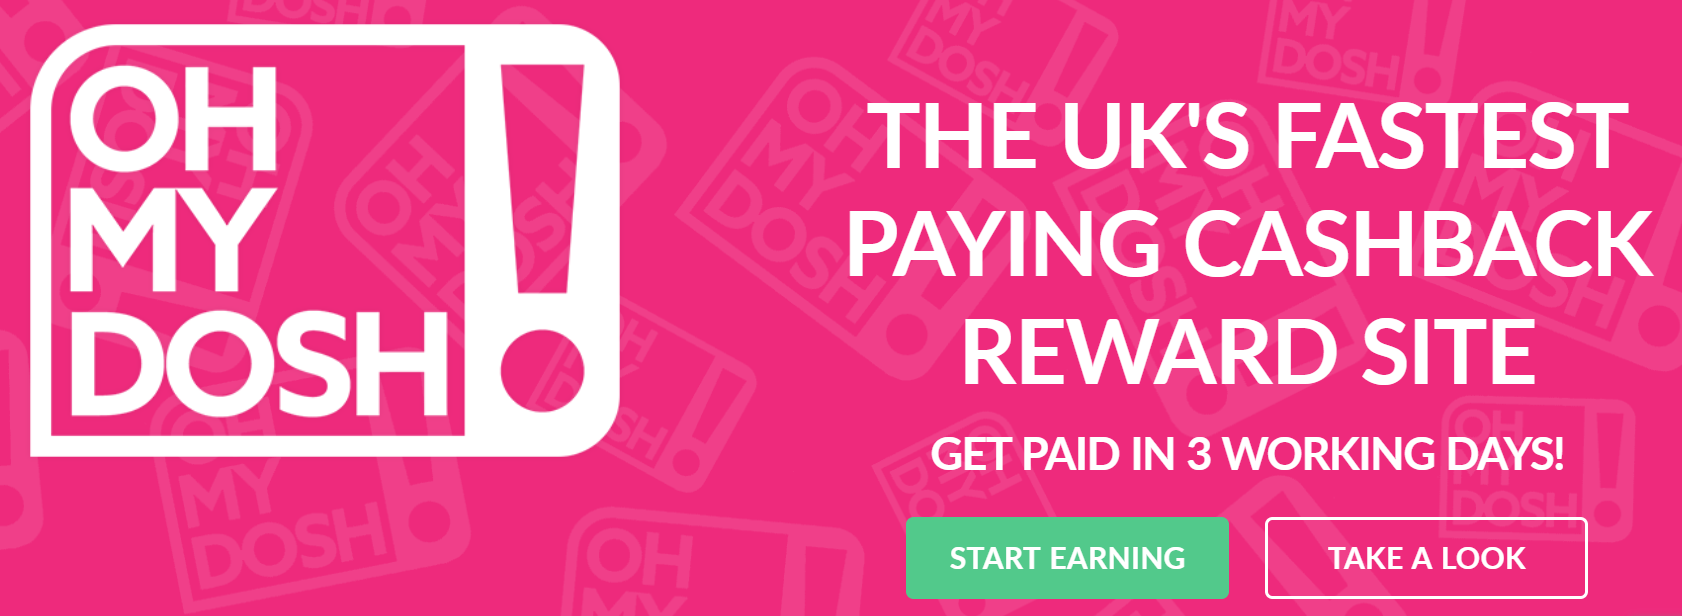 £1 FREE From OhMyDosh